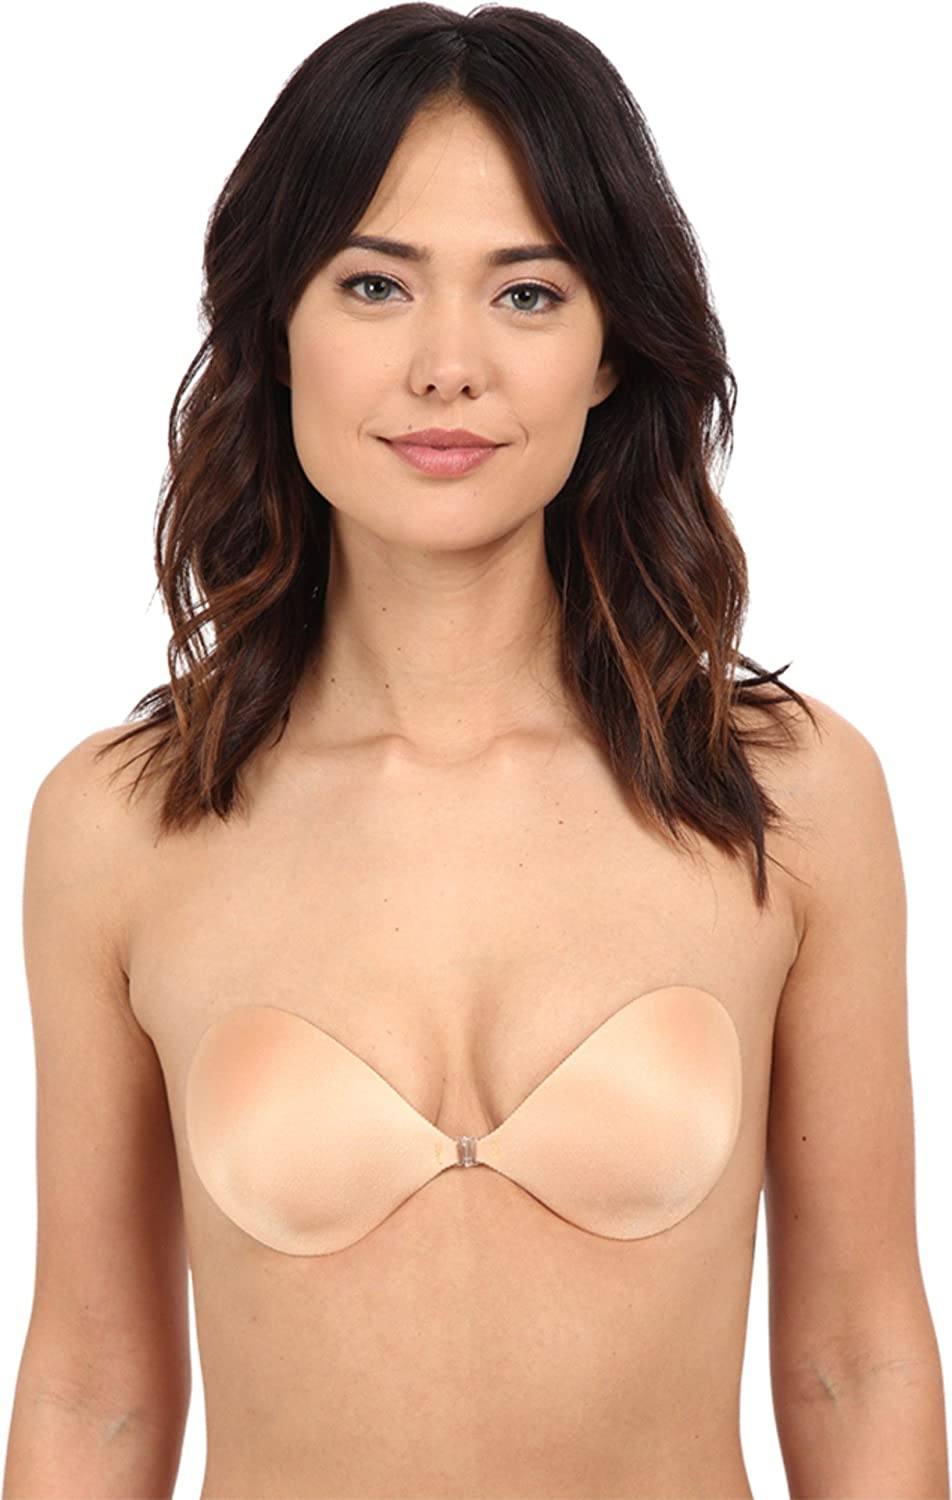 ae051a92f8fca Fashion Forms Womens Backless Strapless Seamless Push Up NuBra Mocha (C)   Amazon.co.uk  Clothing